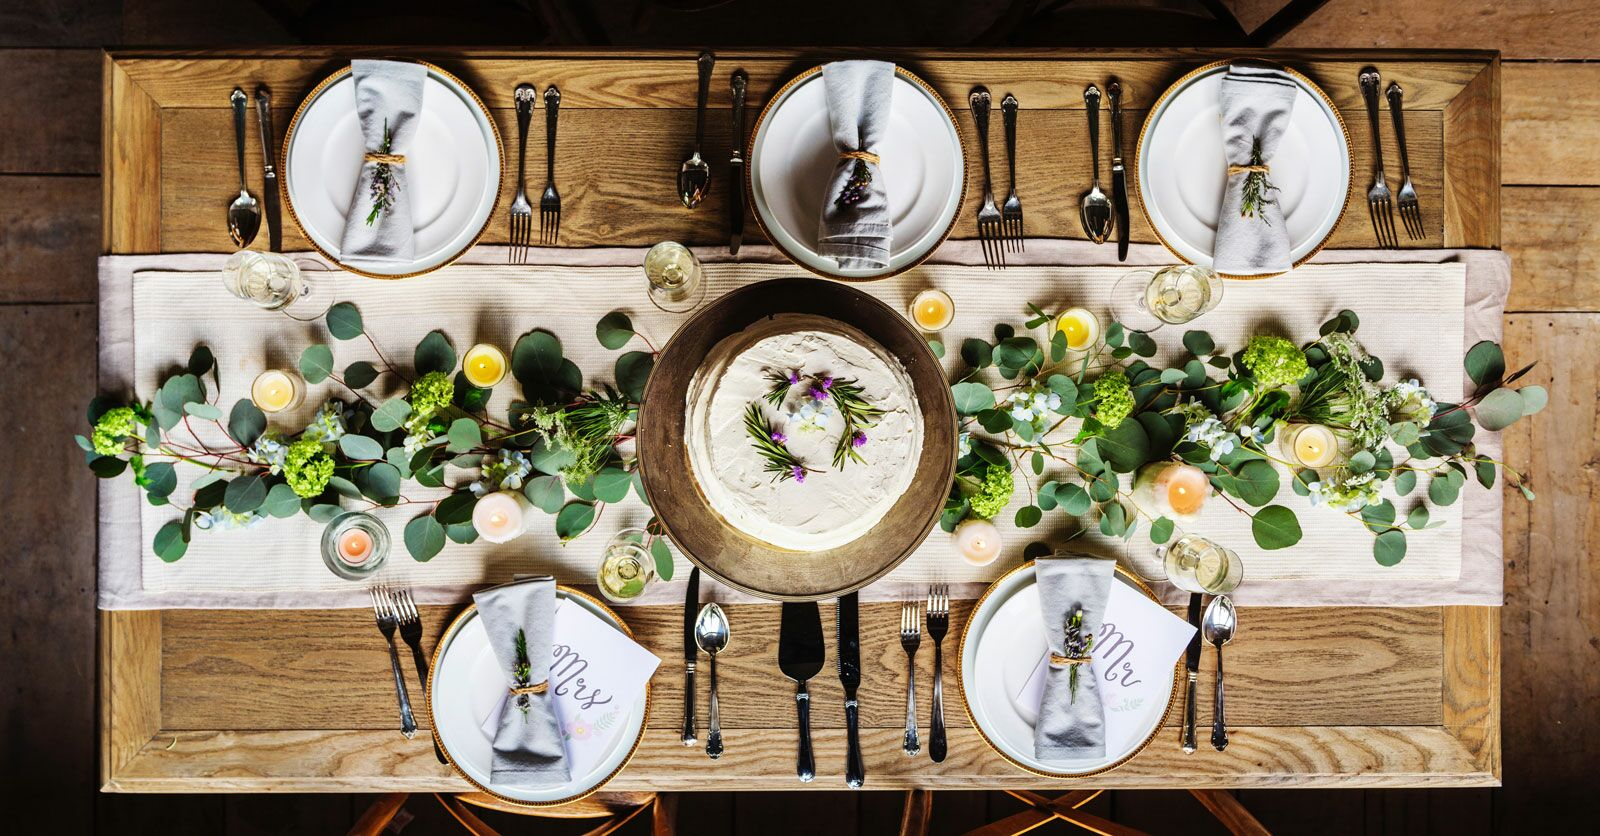 Average Monetary Gift For A Wedding: The Average Cost Of A Rehearsal Dinner In 2018